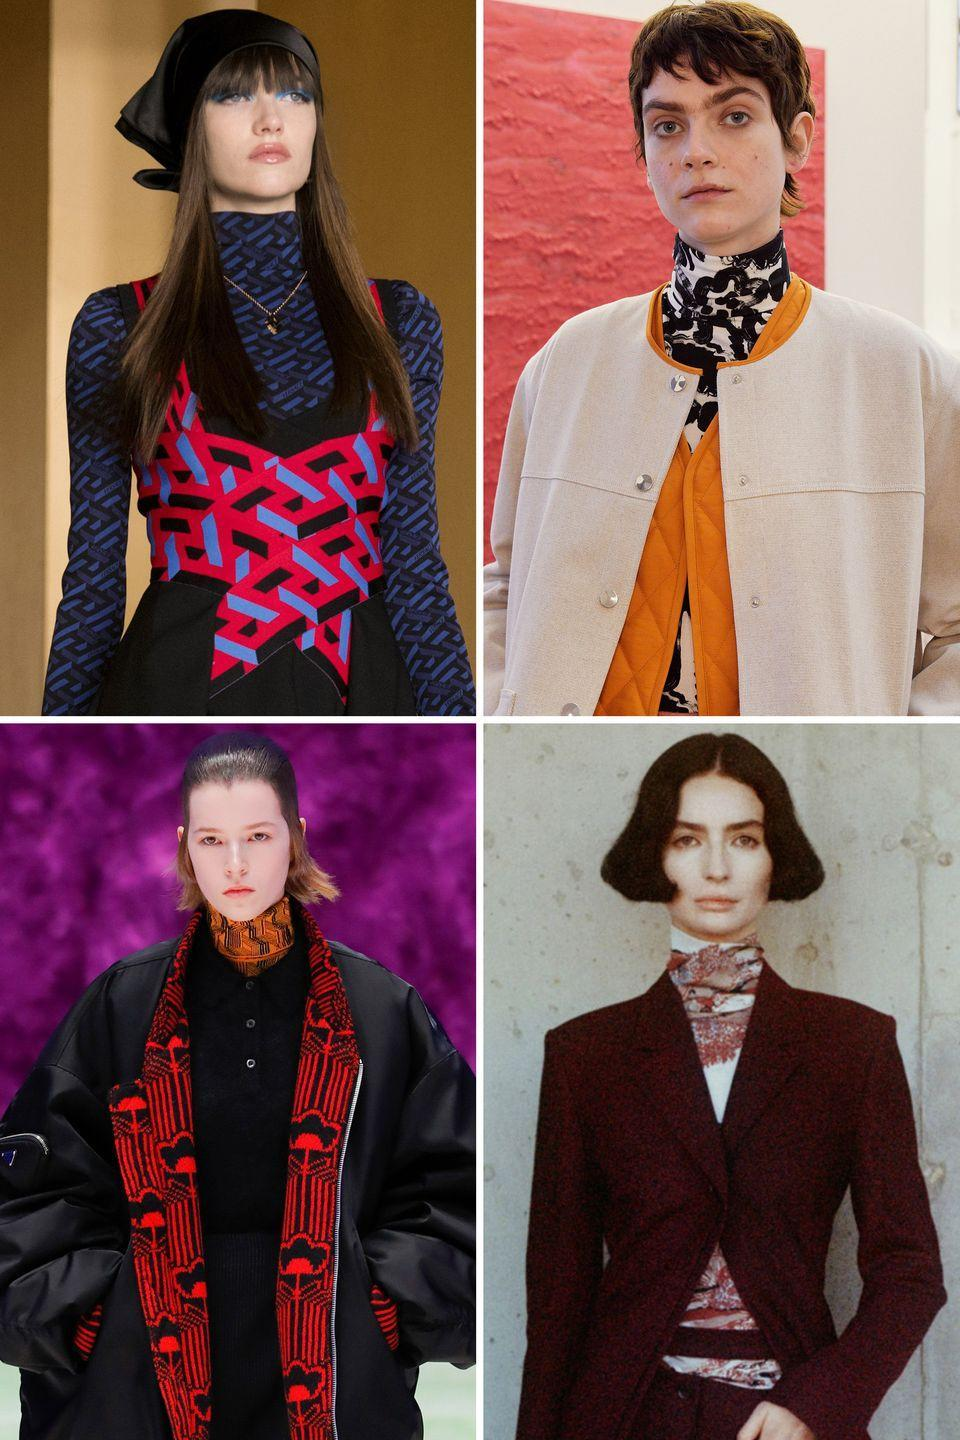 <p>Layering a patterned turtleneck is the styling hit of the Fall runways. Mixed with a pop of pattern, it was a winning combination. </p><p><strong>Insider tip:</strong> A more graphic smaller scale take on print is easier to integrate and play with.</p><p><em>Pictured: Versace, Arthur Arbesser, Prada, Proenza Schouler</em></p>